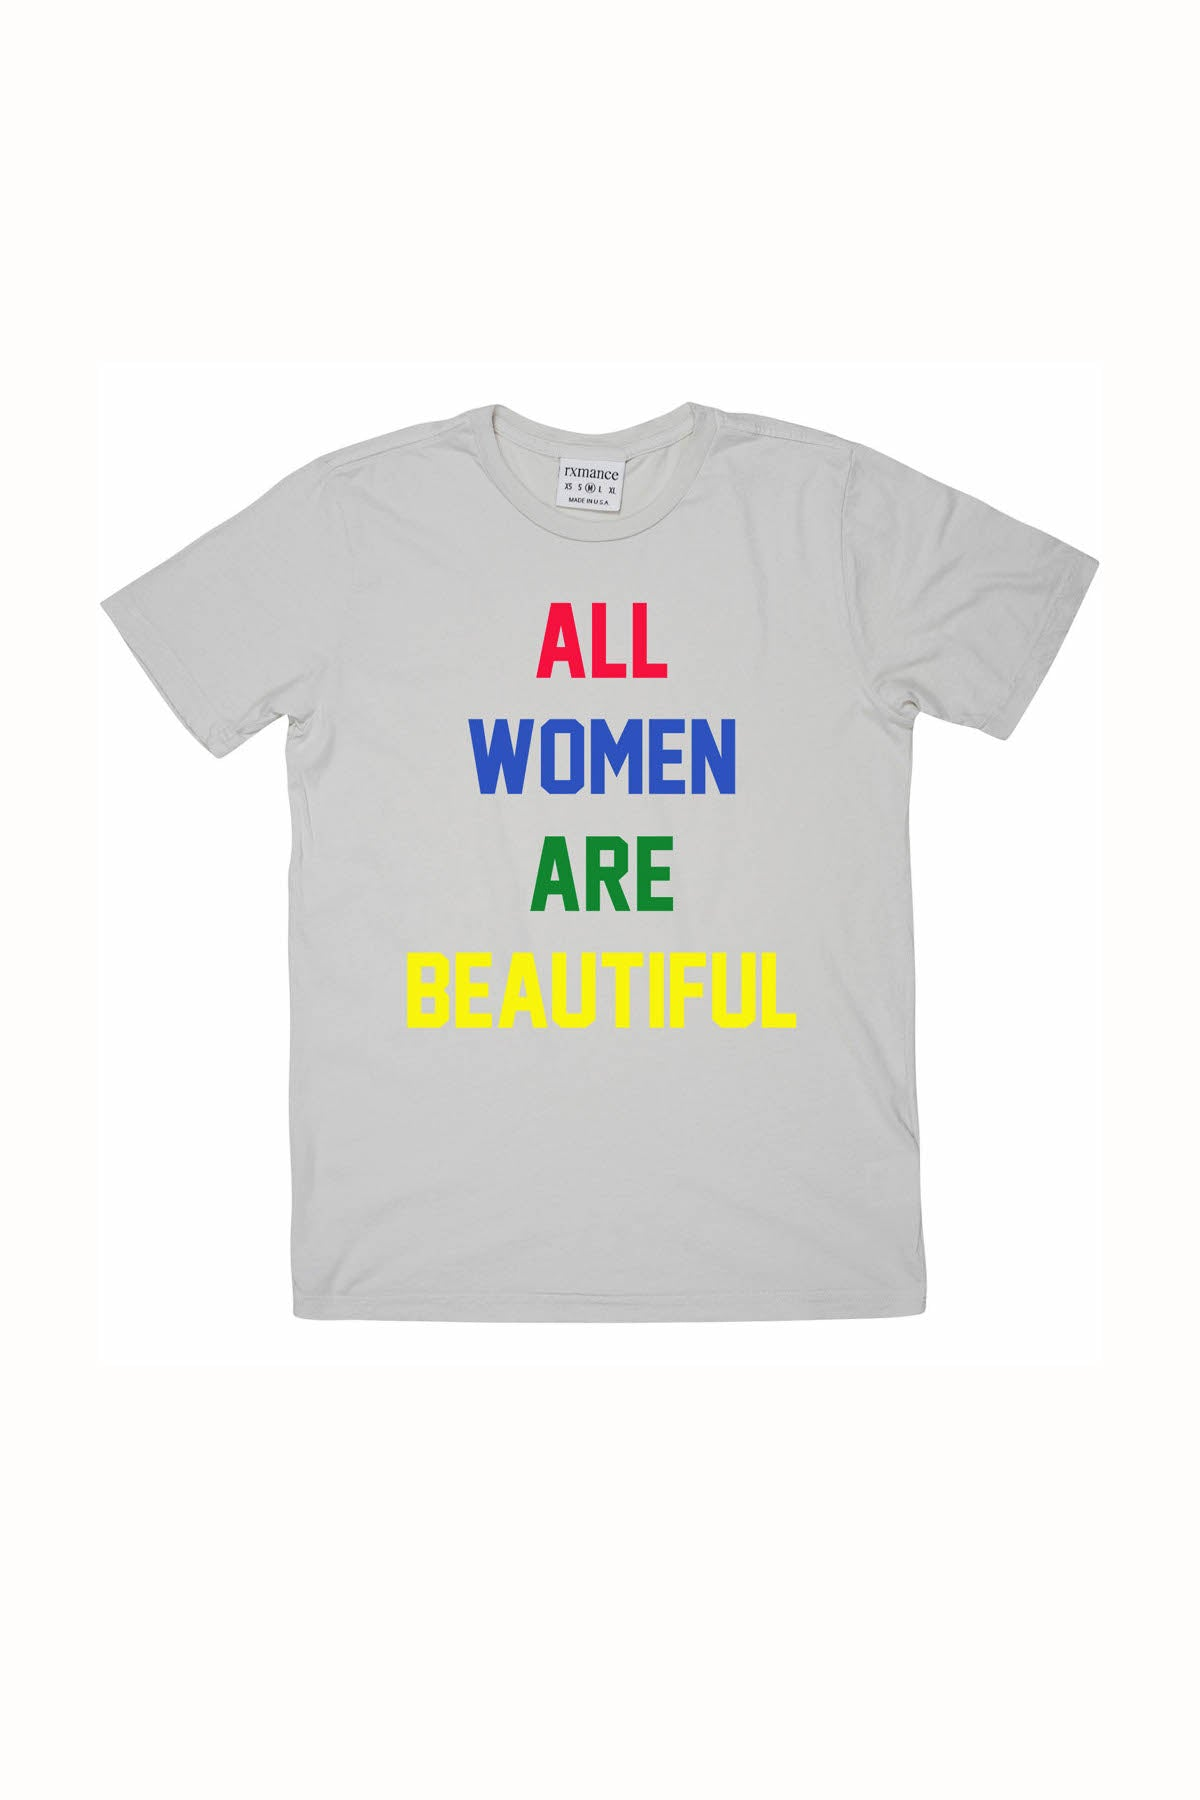 Rxmance Unisex Dawn Grey 'All Women' Tee